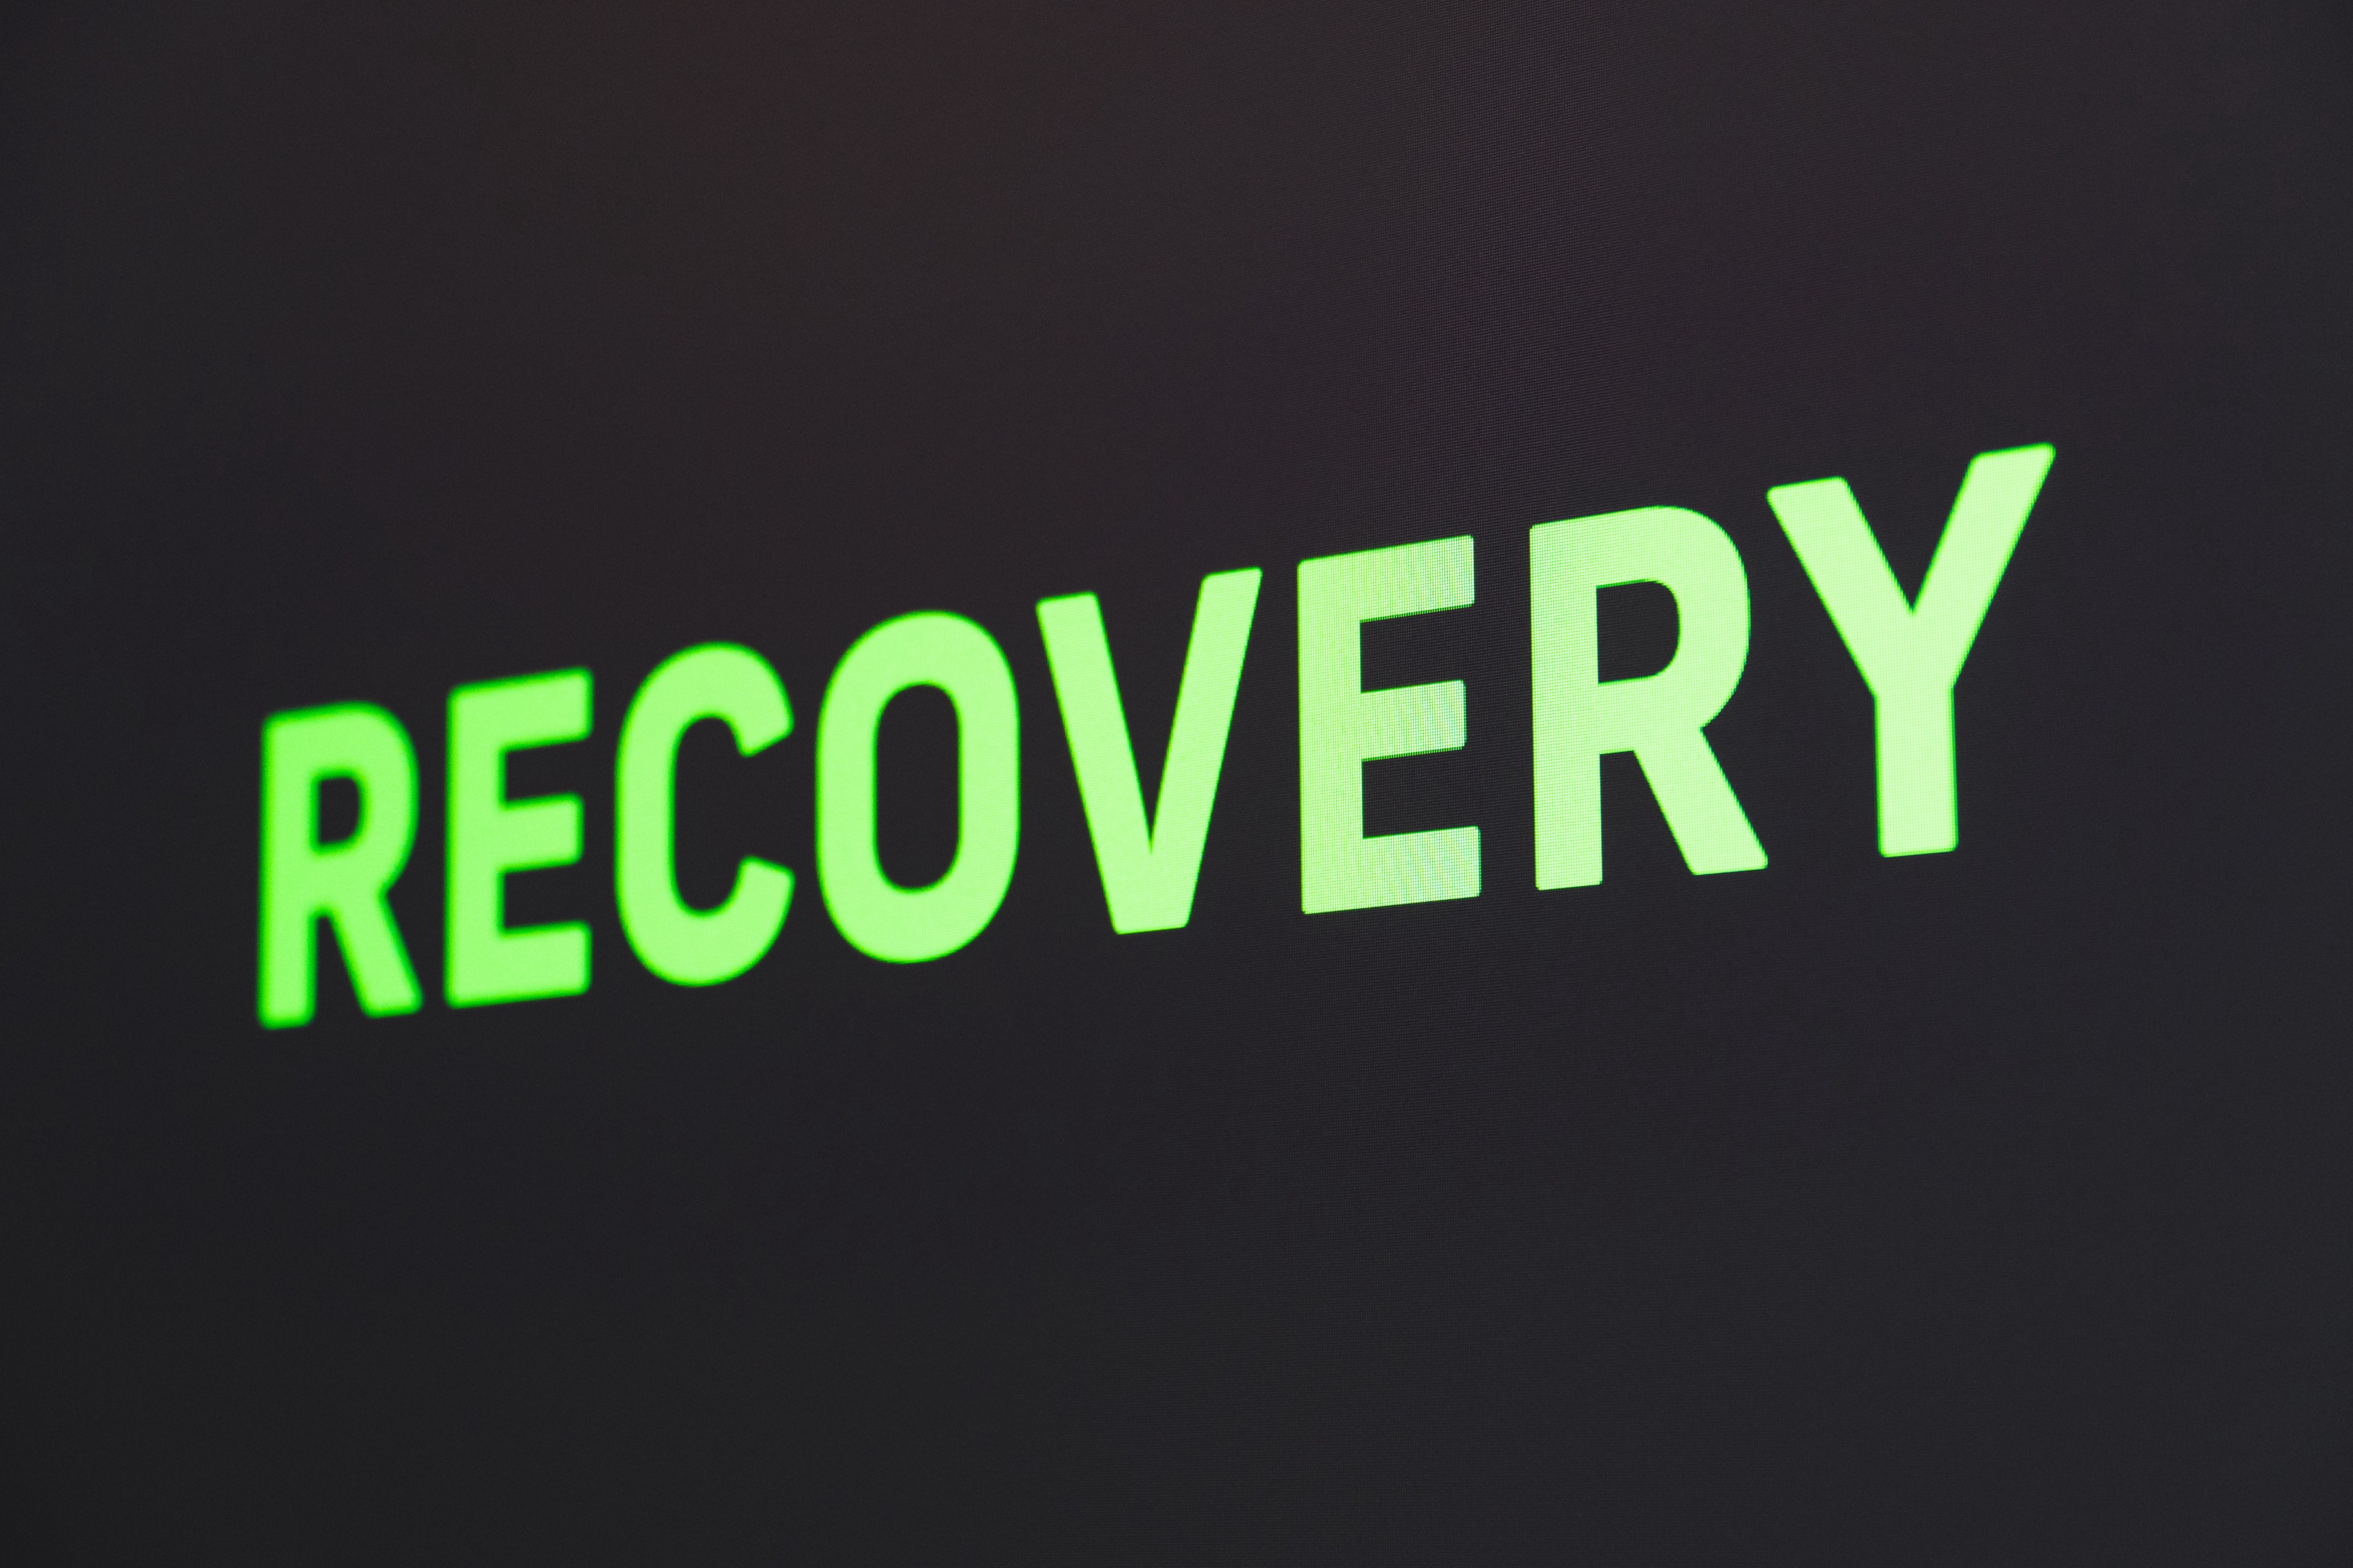 Recovery's success depends on acceptance of addiction and eliminating reflex activities and thoughts